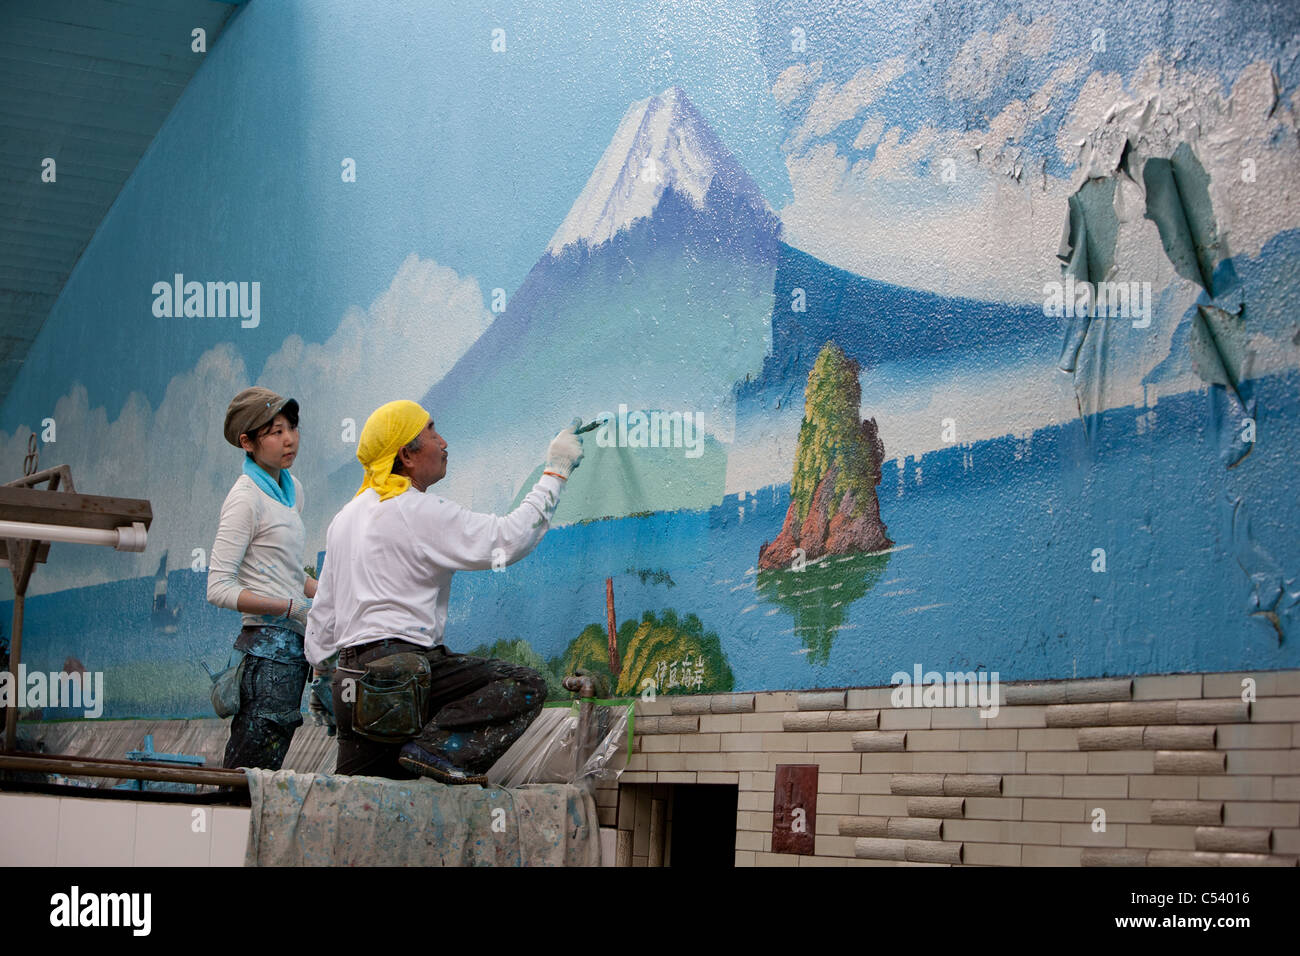 Repainting Mt Fuji Mural On The Wall Of Sento Bath House, In Tokyo, Japan. Part 42